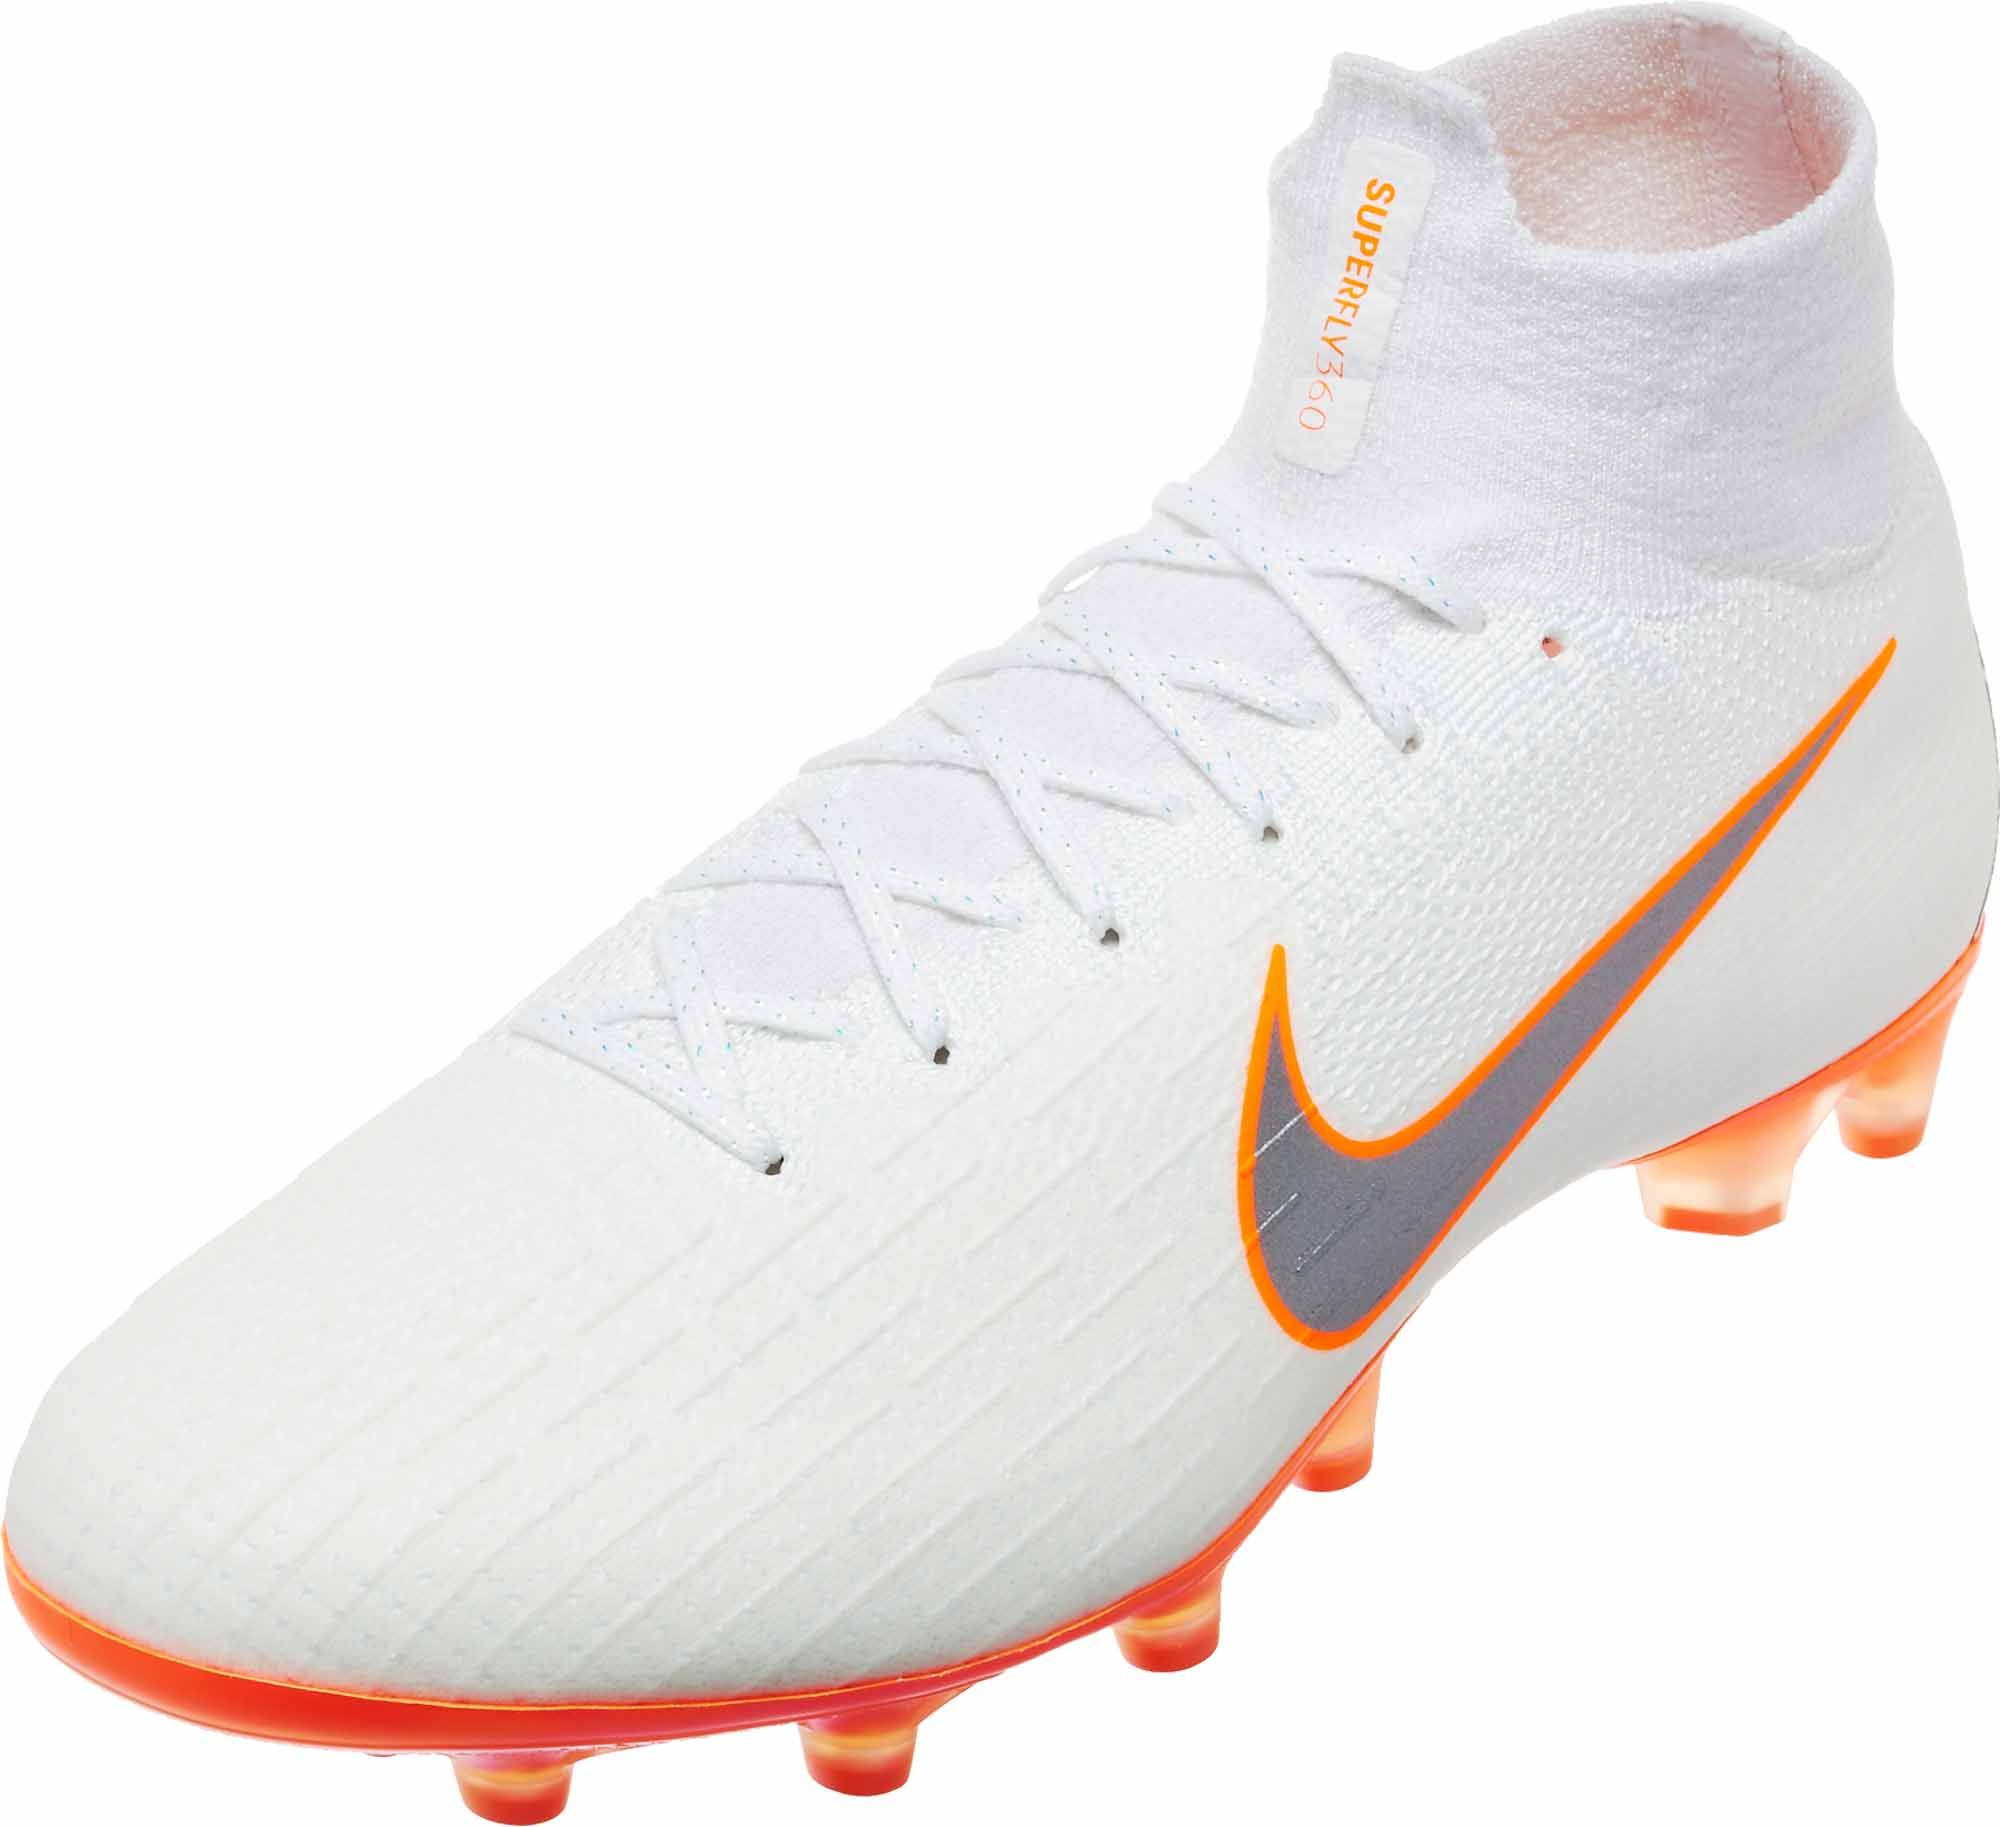 670e40bd3 Just Do It World Cup pack Nike Mercurial Superfly Elite 6 Pro AG soccer  cleats. Buy them from www.soccerpro.com